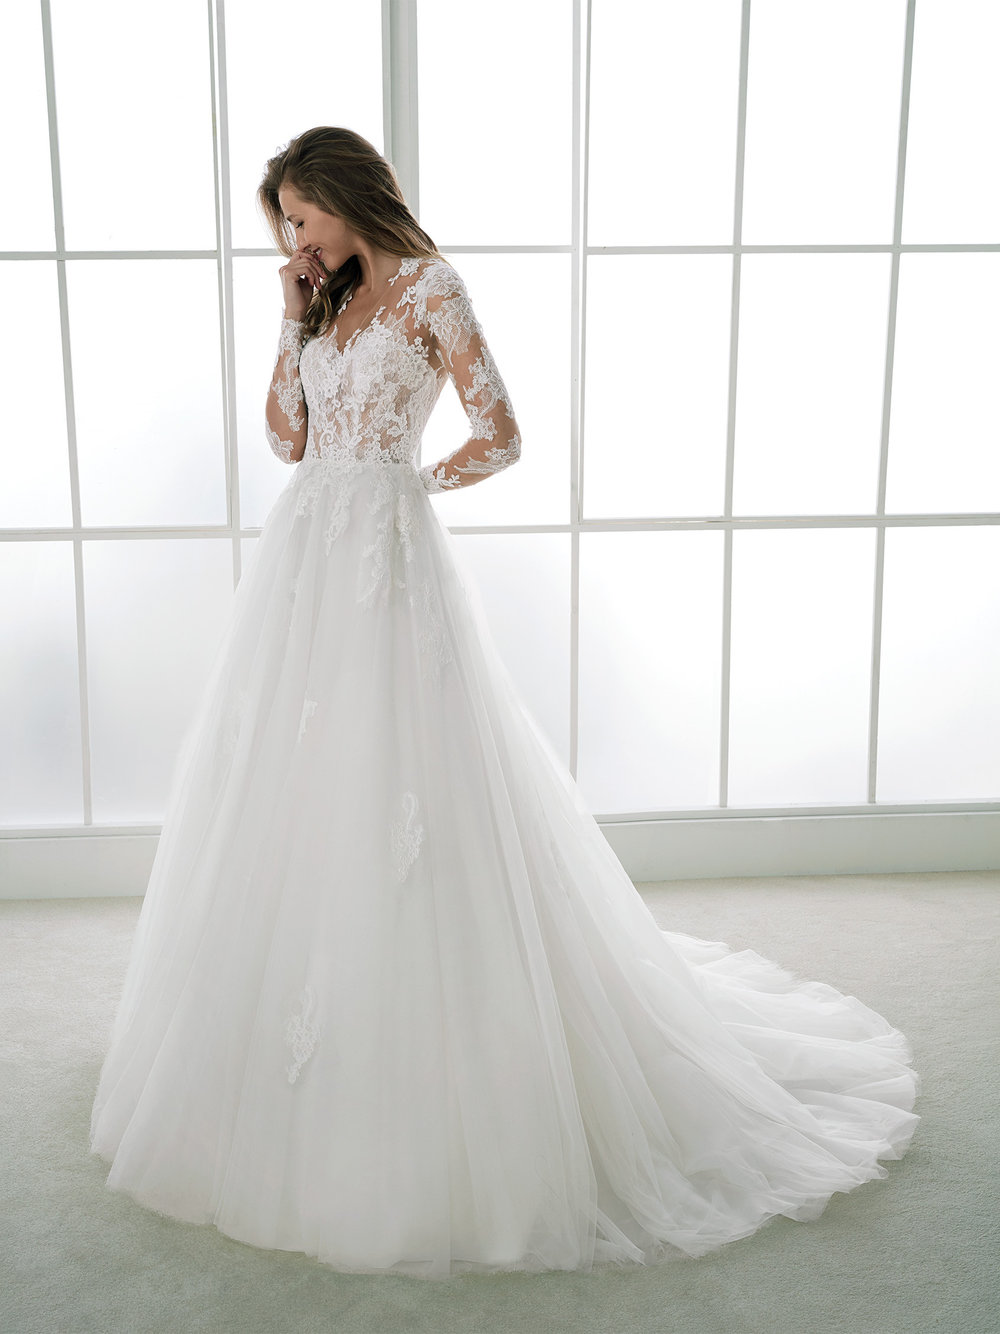 Plus Size Bridal Shop Kansas City